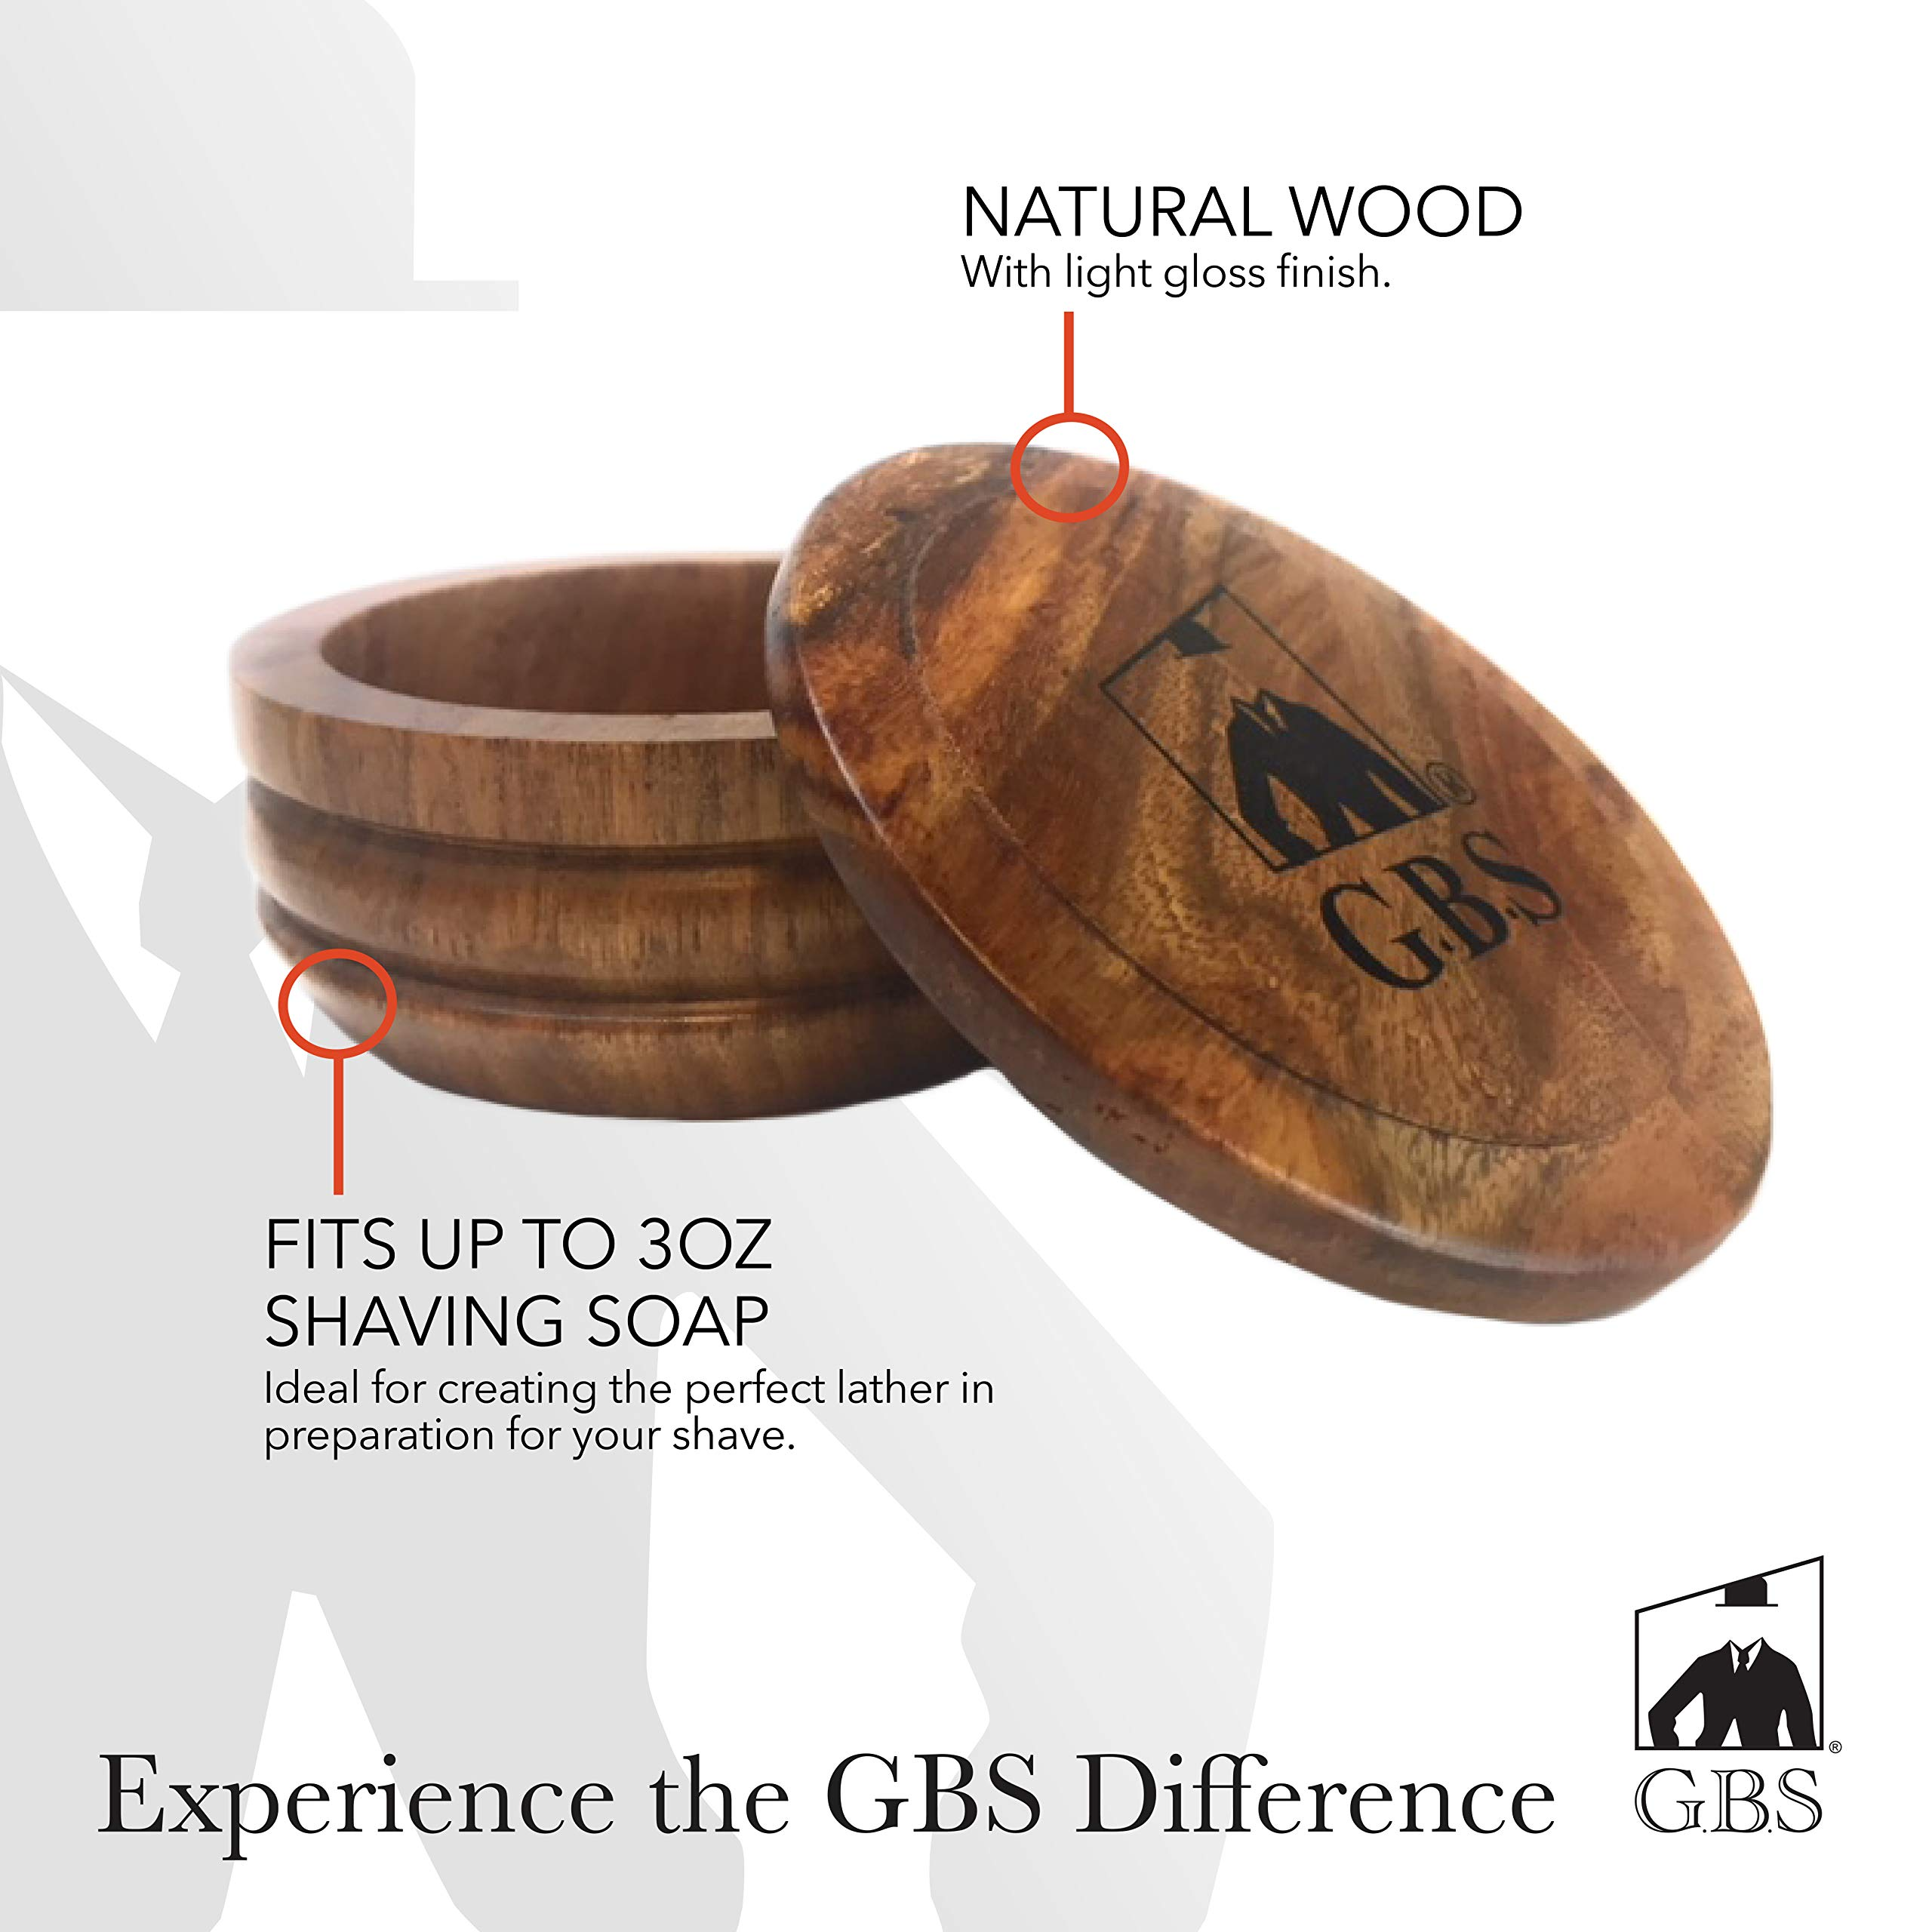 GBS Men's Wood Shaving Bowl with Lid - Keep Shave Cream & Shave Soap Clean with Cover. Wood Grains Will Accent Any Shaving Razor, Shave Brush or Barber Accessory. Enhance Your Wet Shave